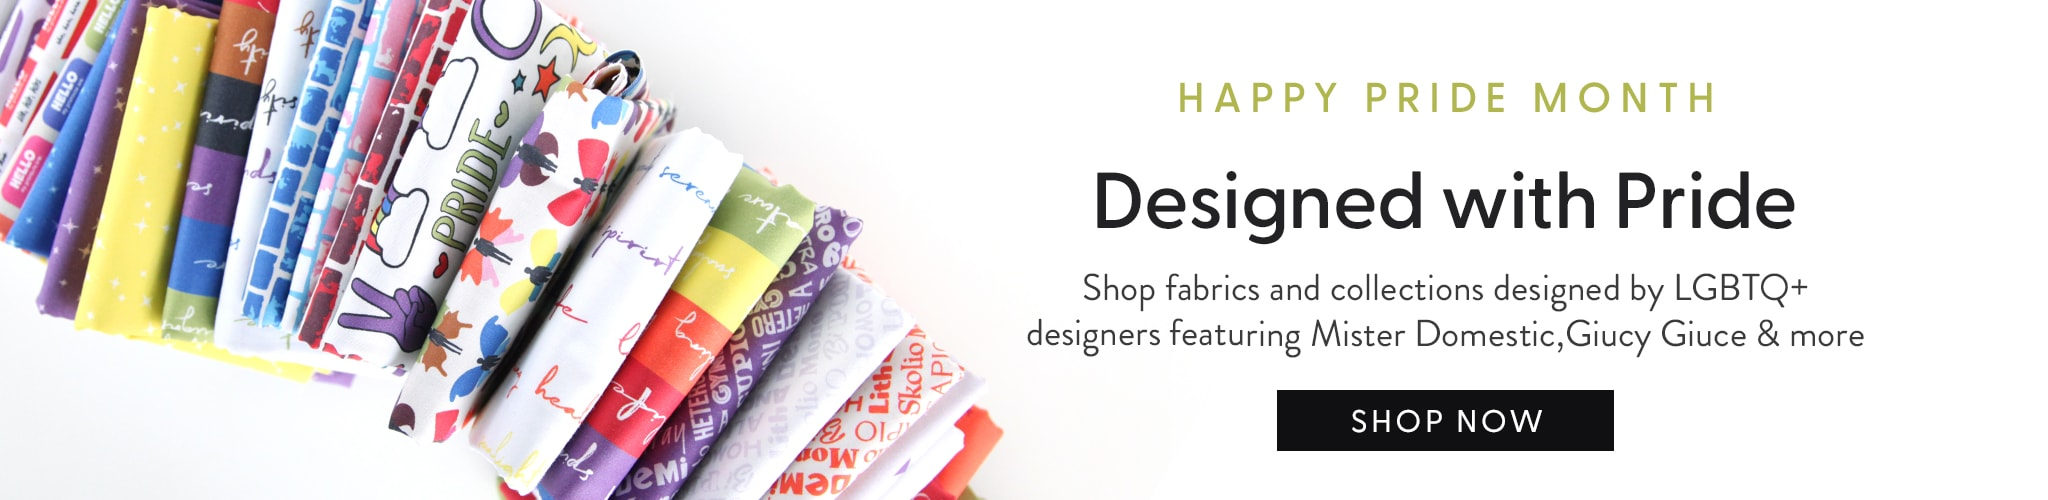 Happy Pride Month. Designed with Pride. Shop fabrics and collections designed by LGBTQ+ designers, featuring Mr. Domestic,  Guicy Guice and more.